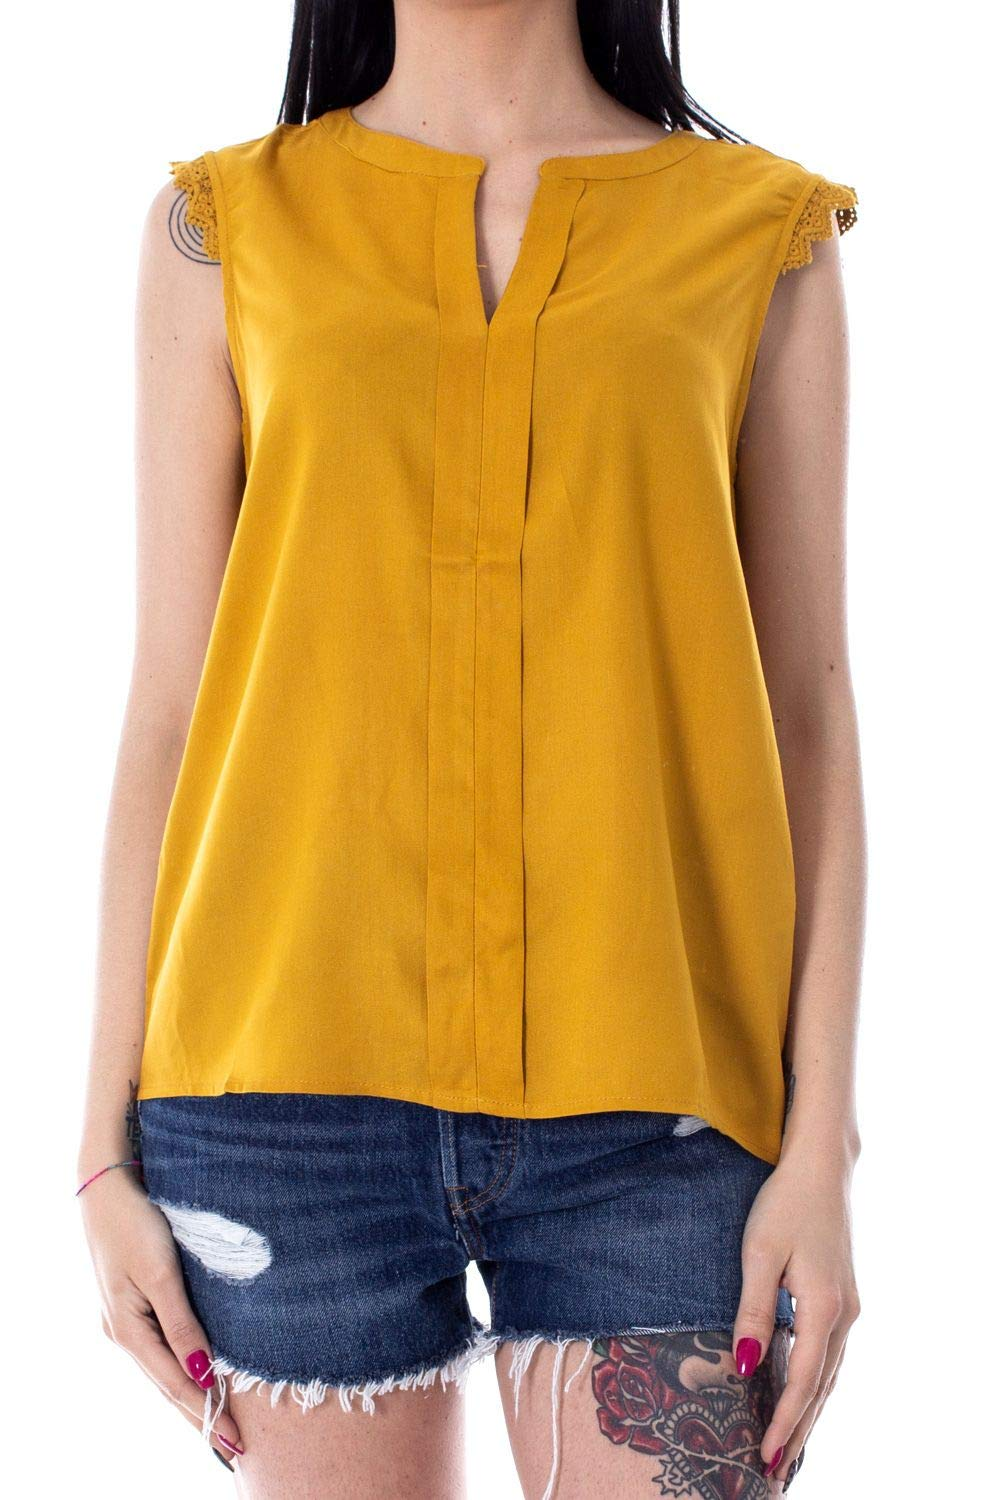 Only Women's 15157656YELLOW Yellow Viscose Tank Top